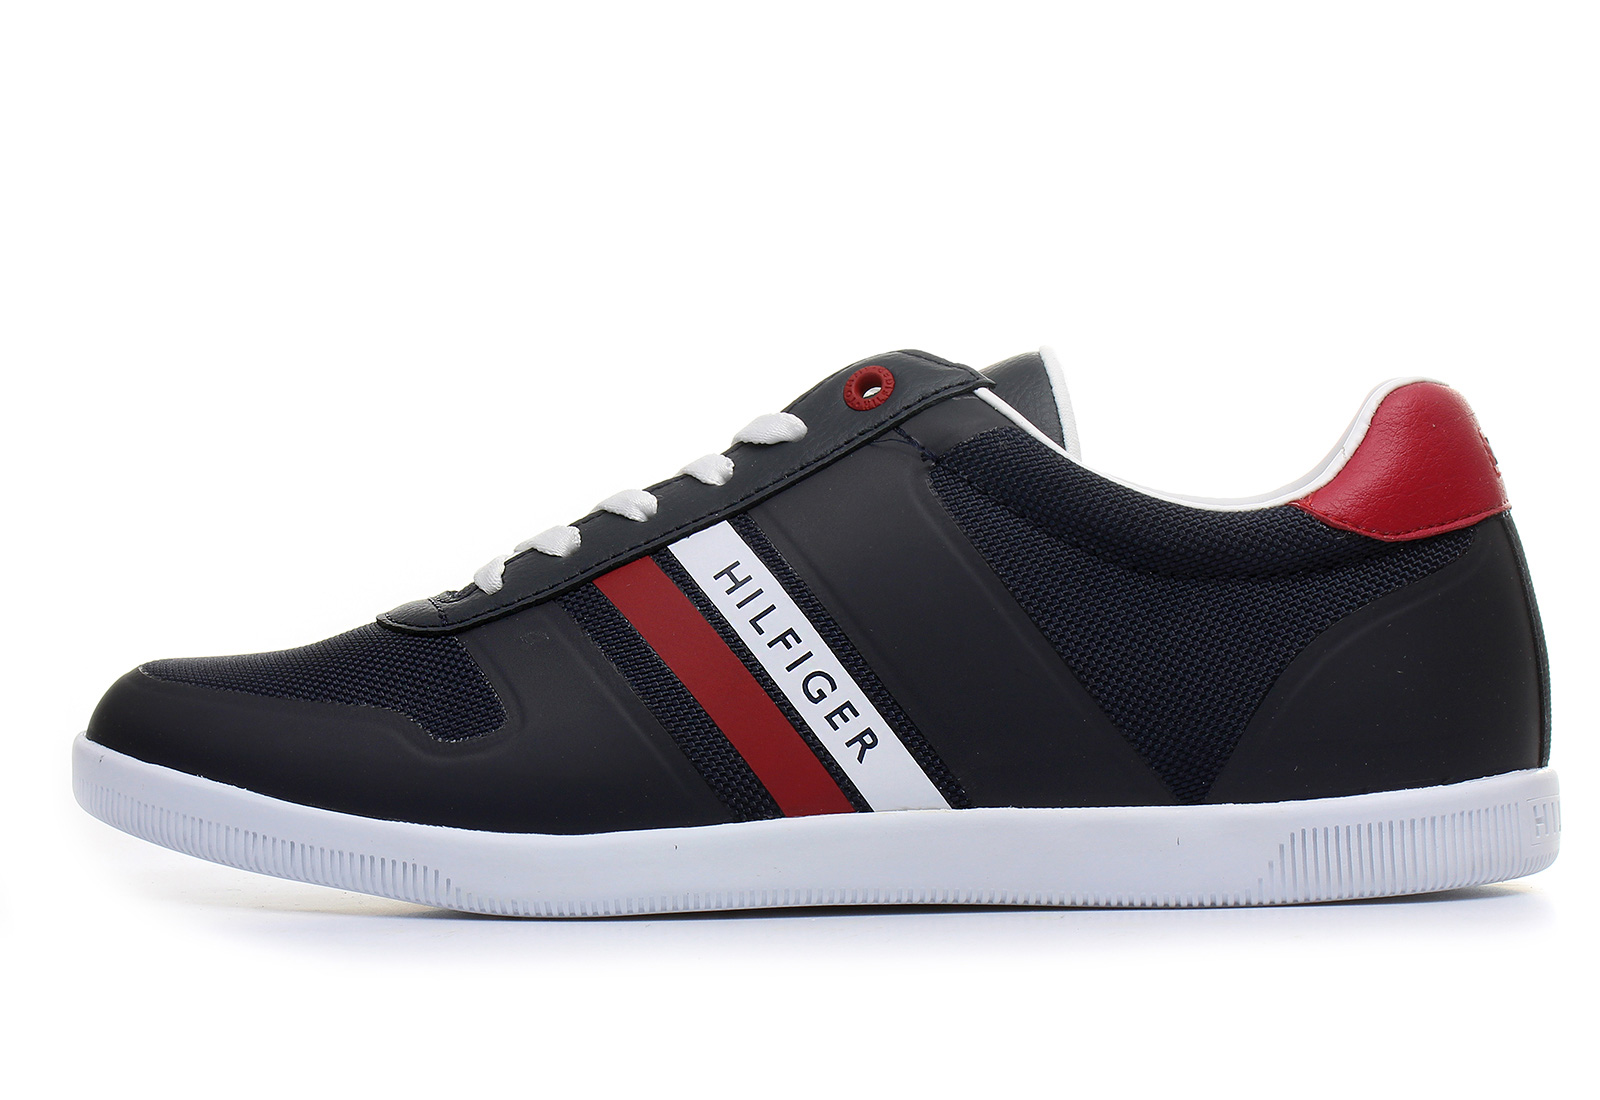 df77547e1e Tommy Hilfiger Shoes - Denzel 9d - 16F-1664-403 - Online shop for ...